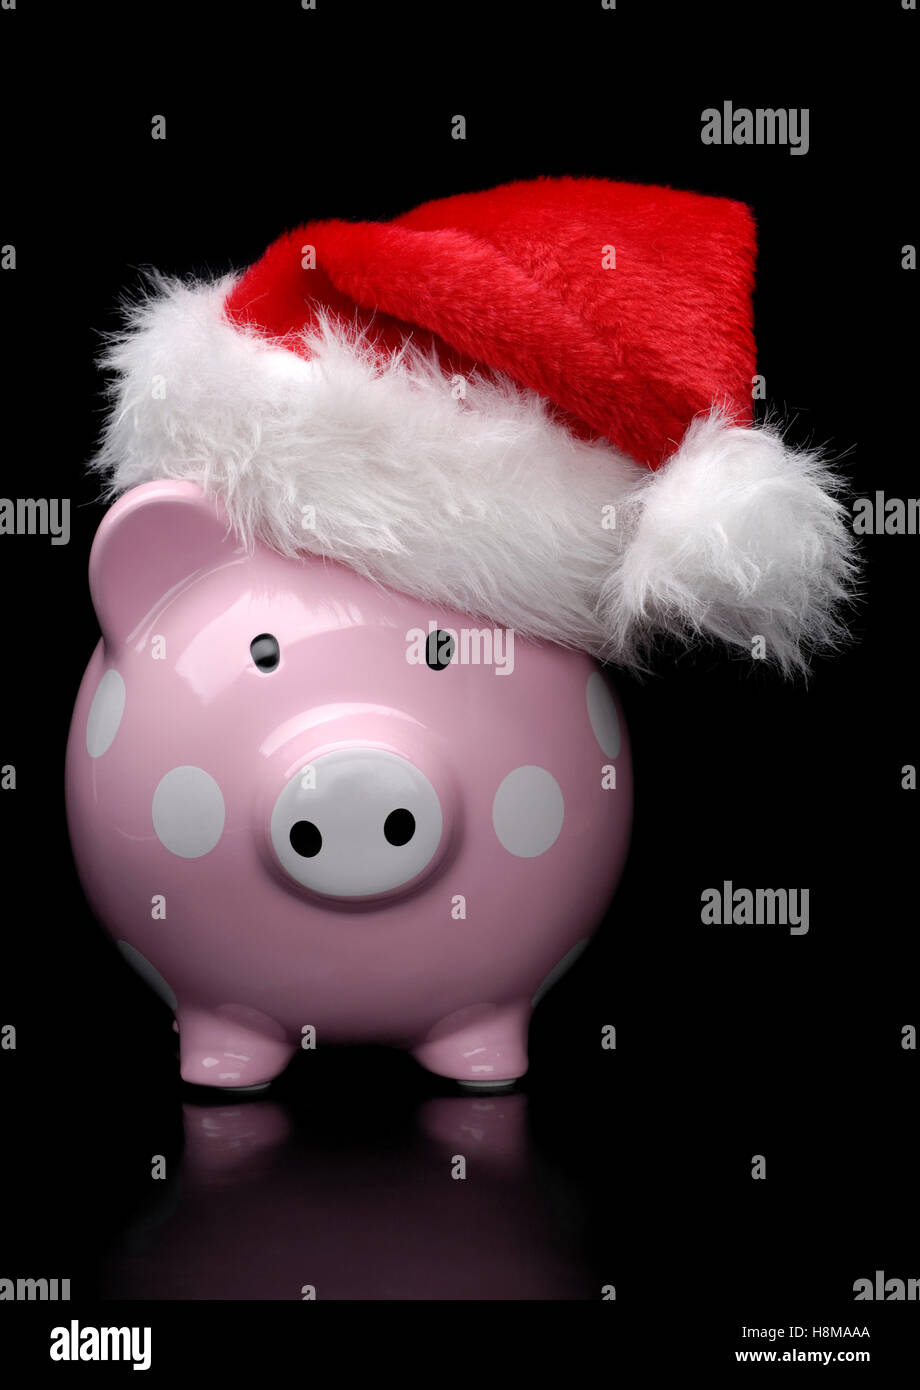 Piggy bank wearing Christmas hat - Stock Image